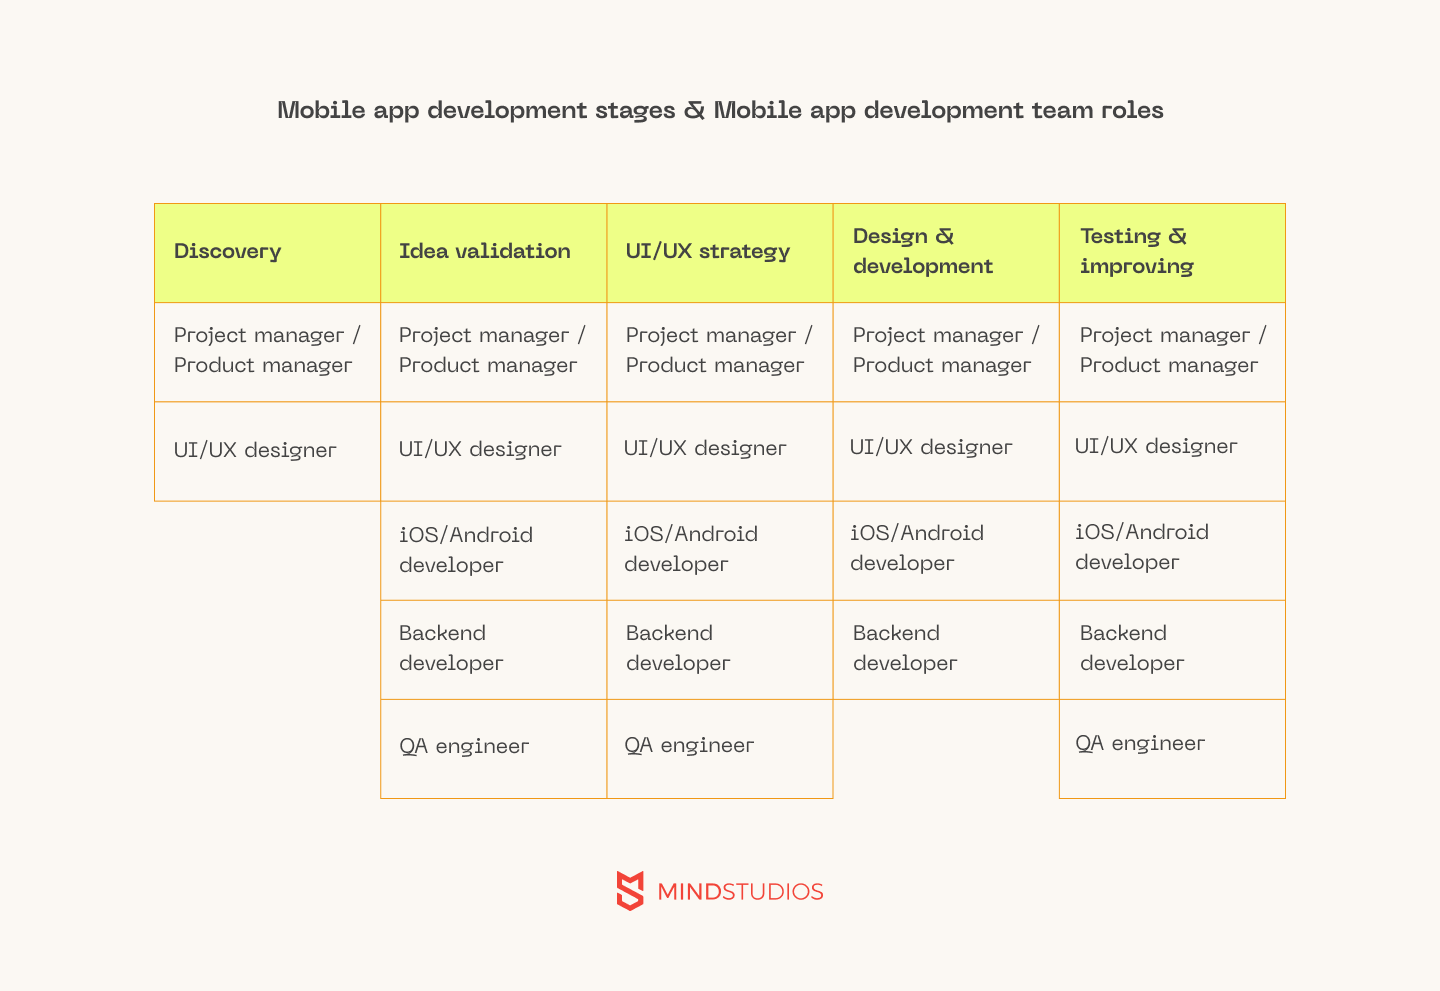 App development team roles